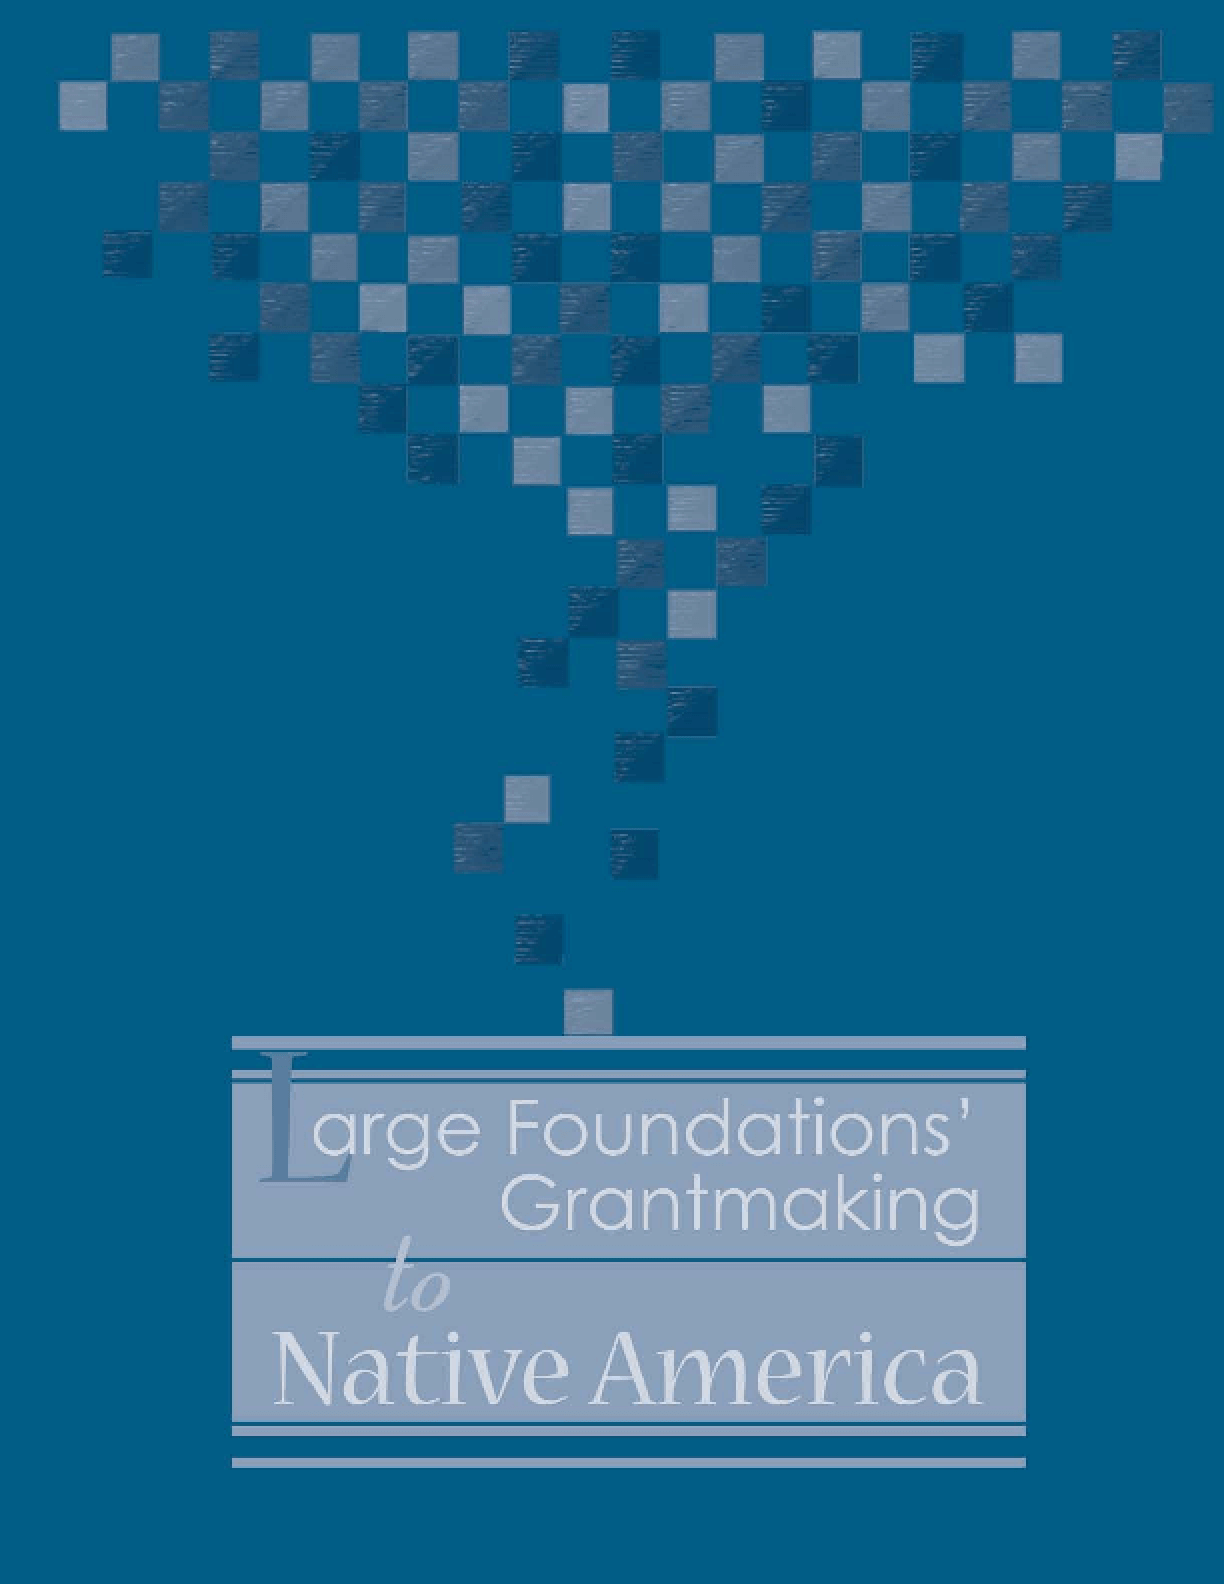 Large Foundations' Grantmaking to Native America